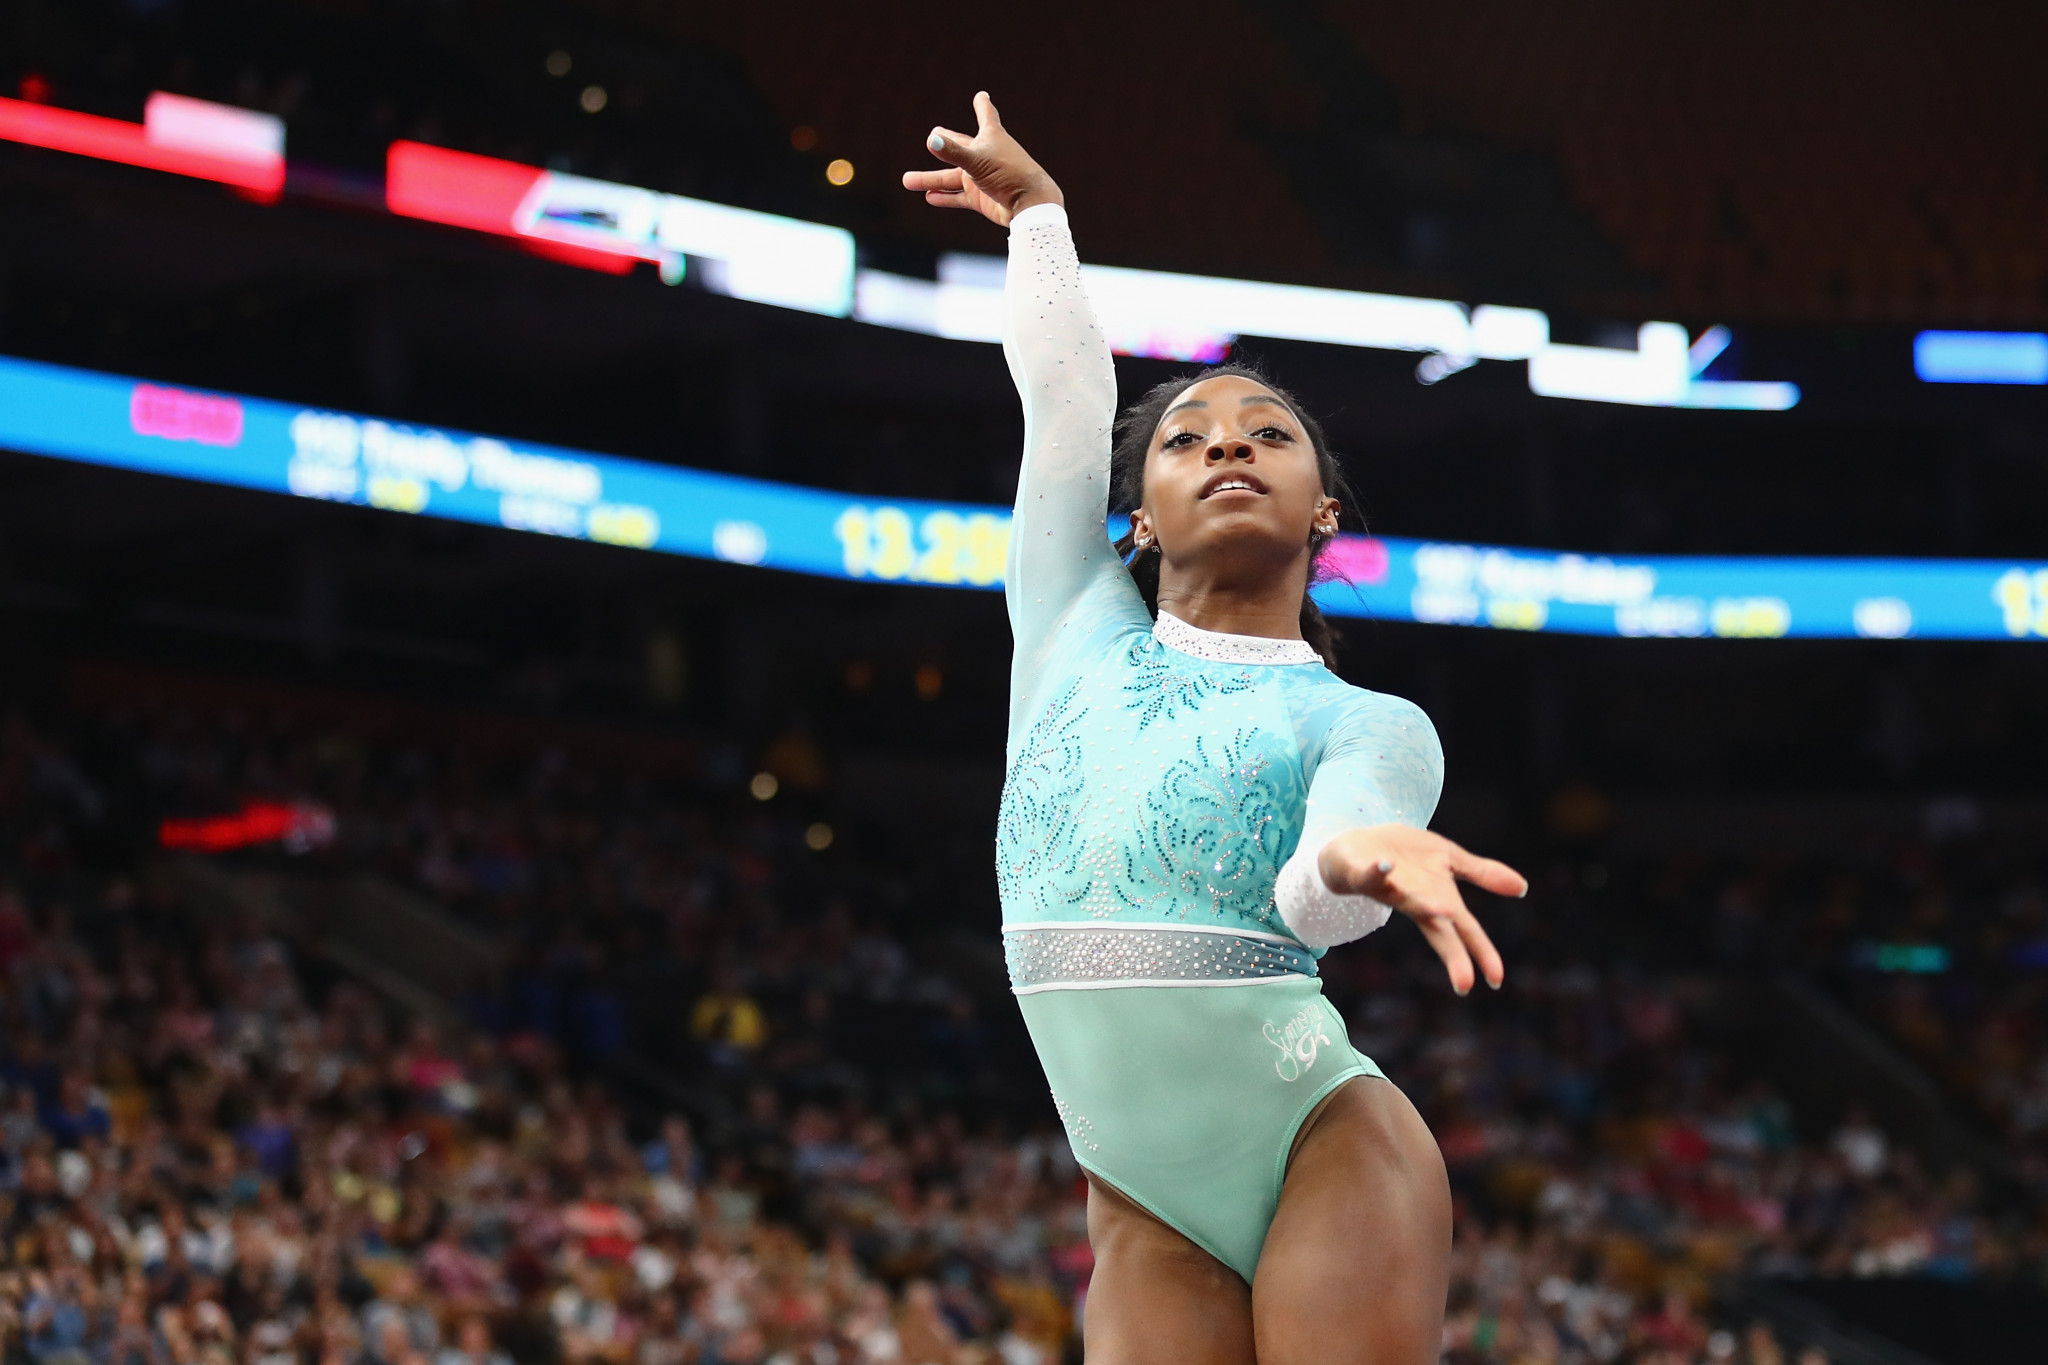 Simone Biles wore a teal leotard while competing at the United States national gymnastics championships in support of other sexual abuse victims ©Getty Images